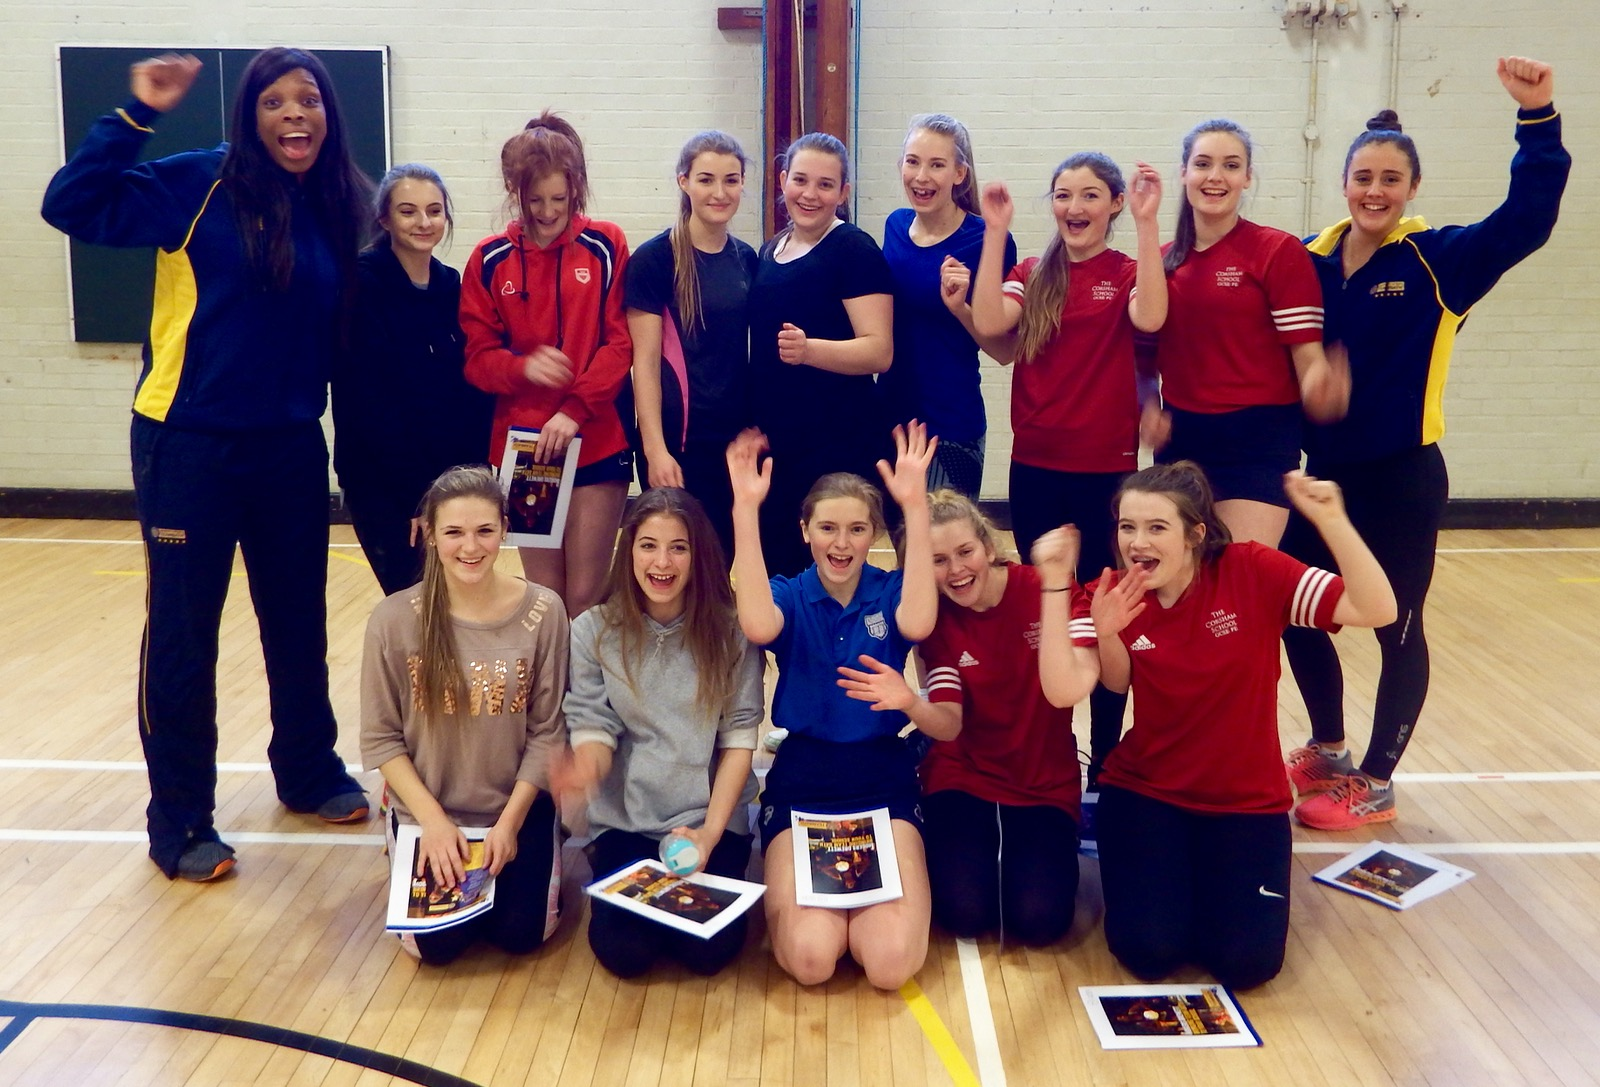 corsham-netball-workshop-260117